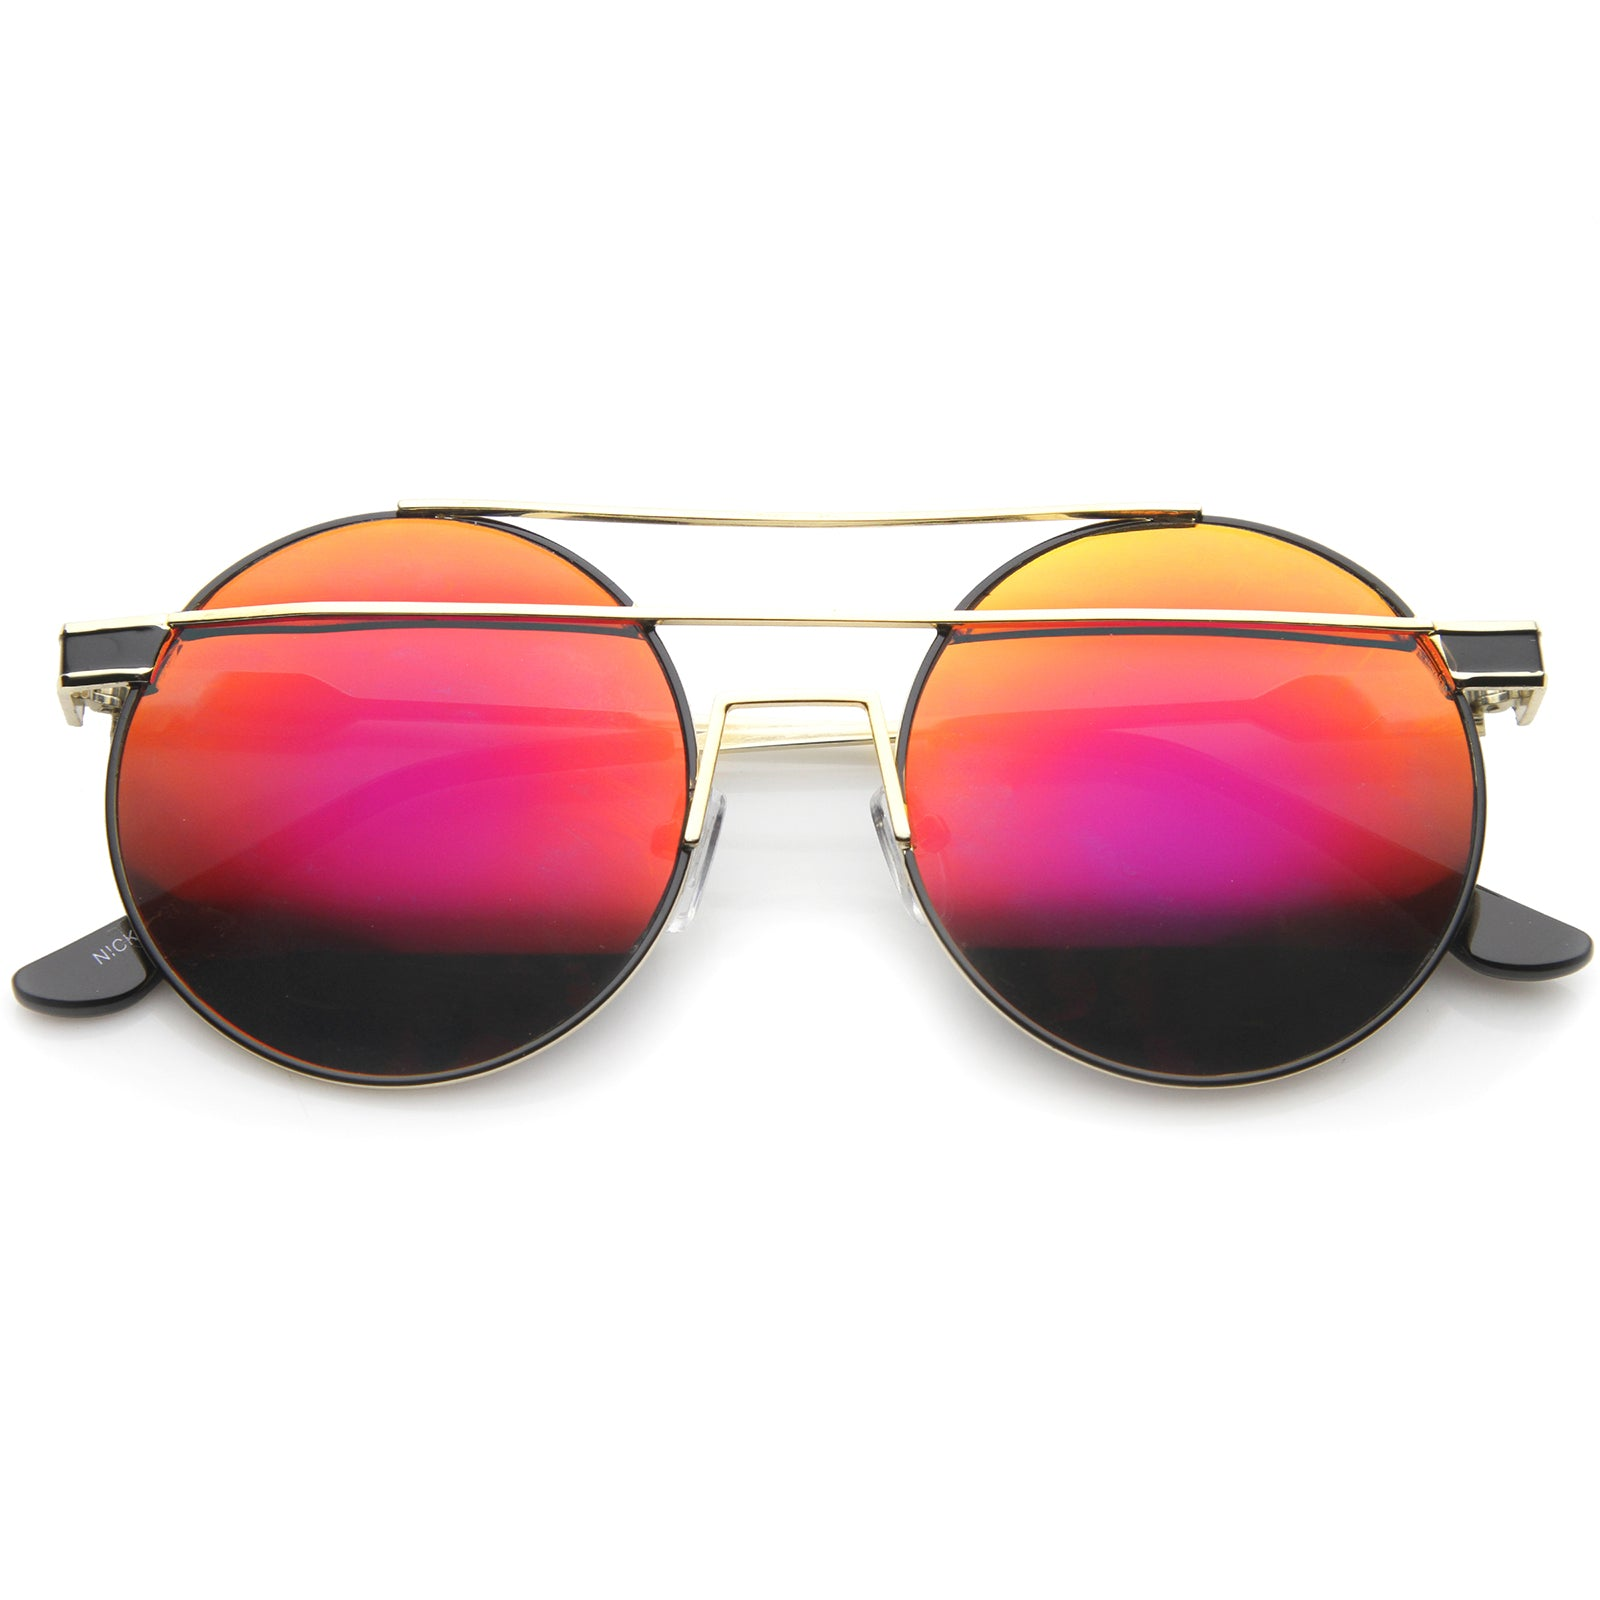 Modern Metal Frame Double Bridge Colored Mirror Lens Round Sunglasses 59mm - sunglass.la - 21